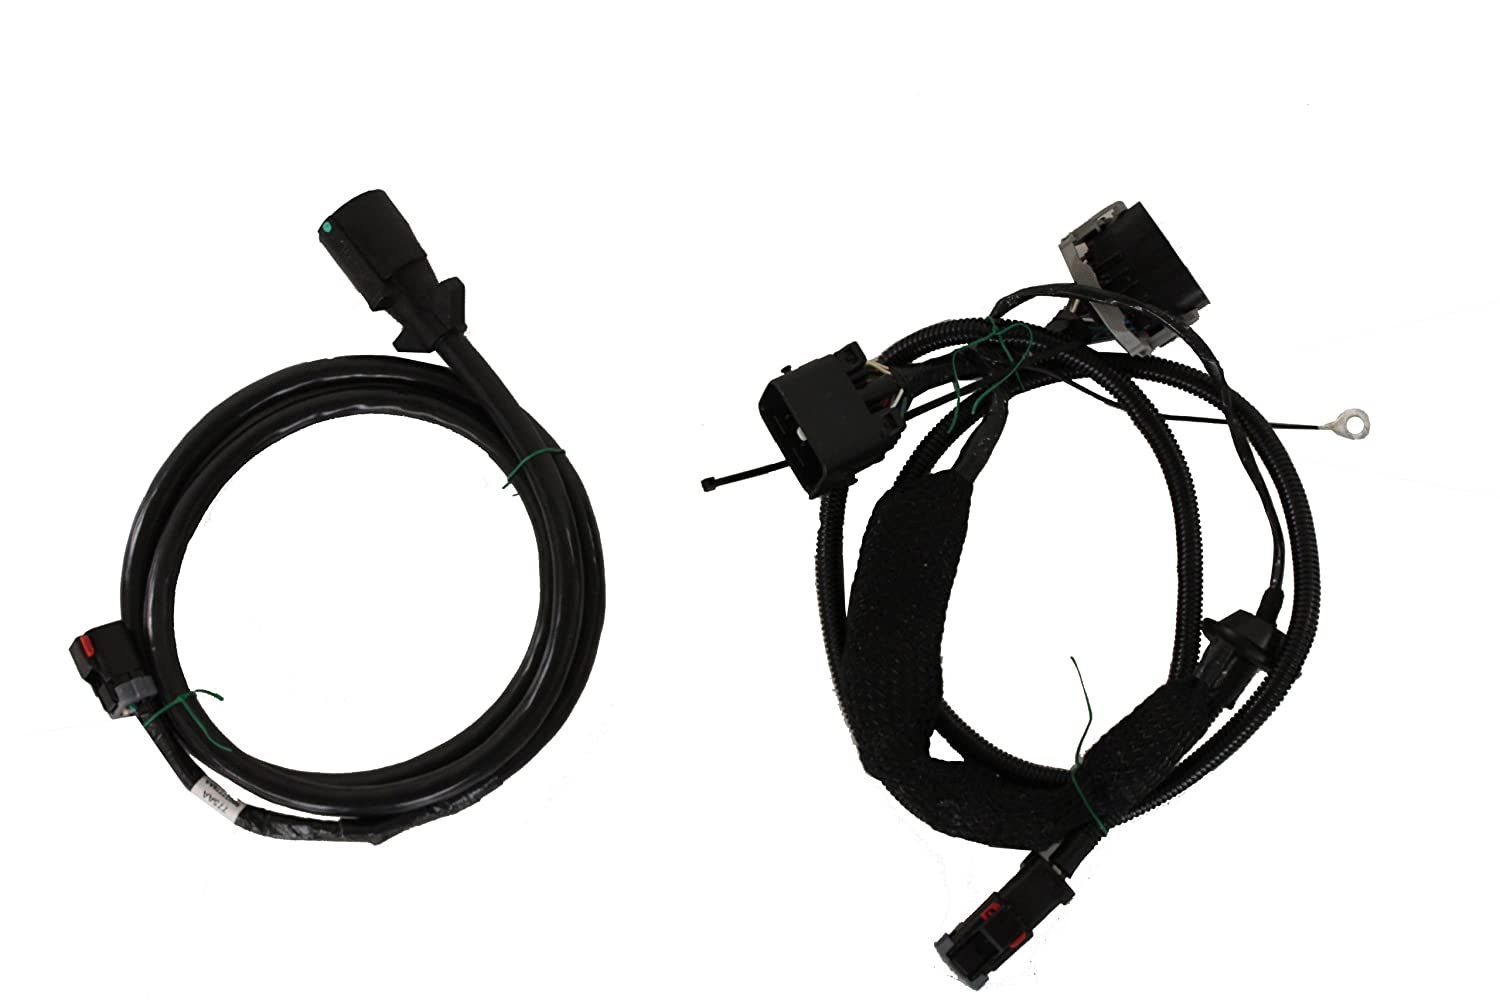 71x 3dYH2ML._SL1500_ amazon com 2007 2013 jeep wrangler tow vehicle wiring harness wiring harness for jeep wrangler at eliteediting.co